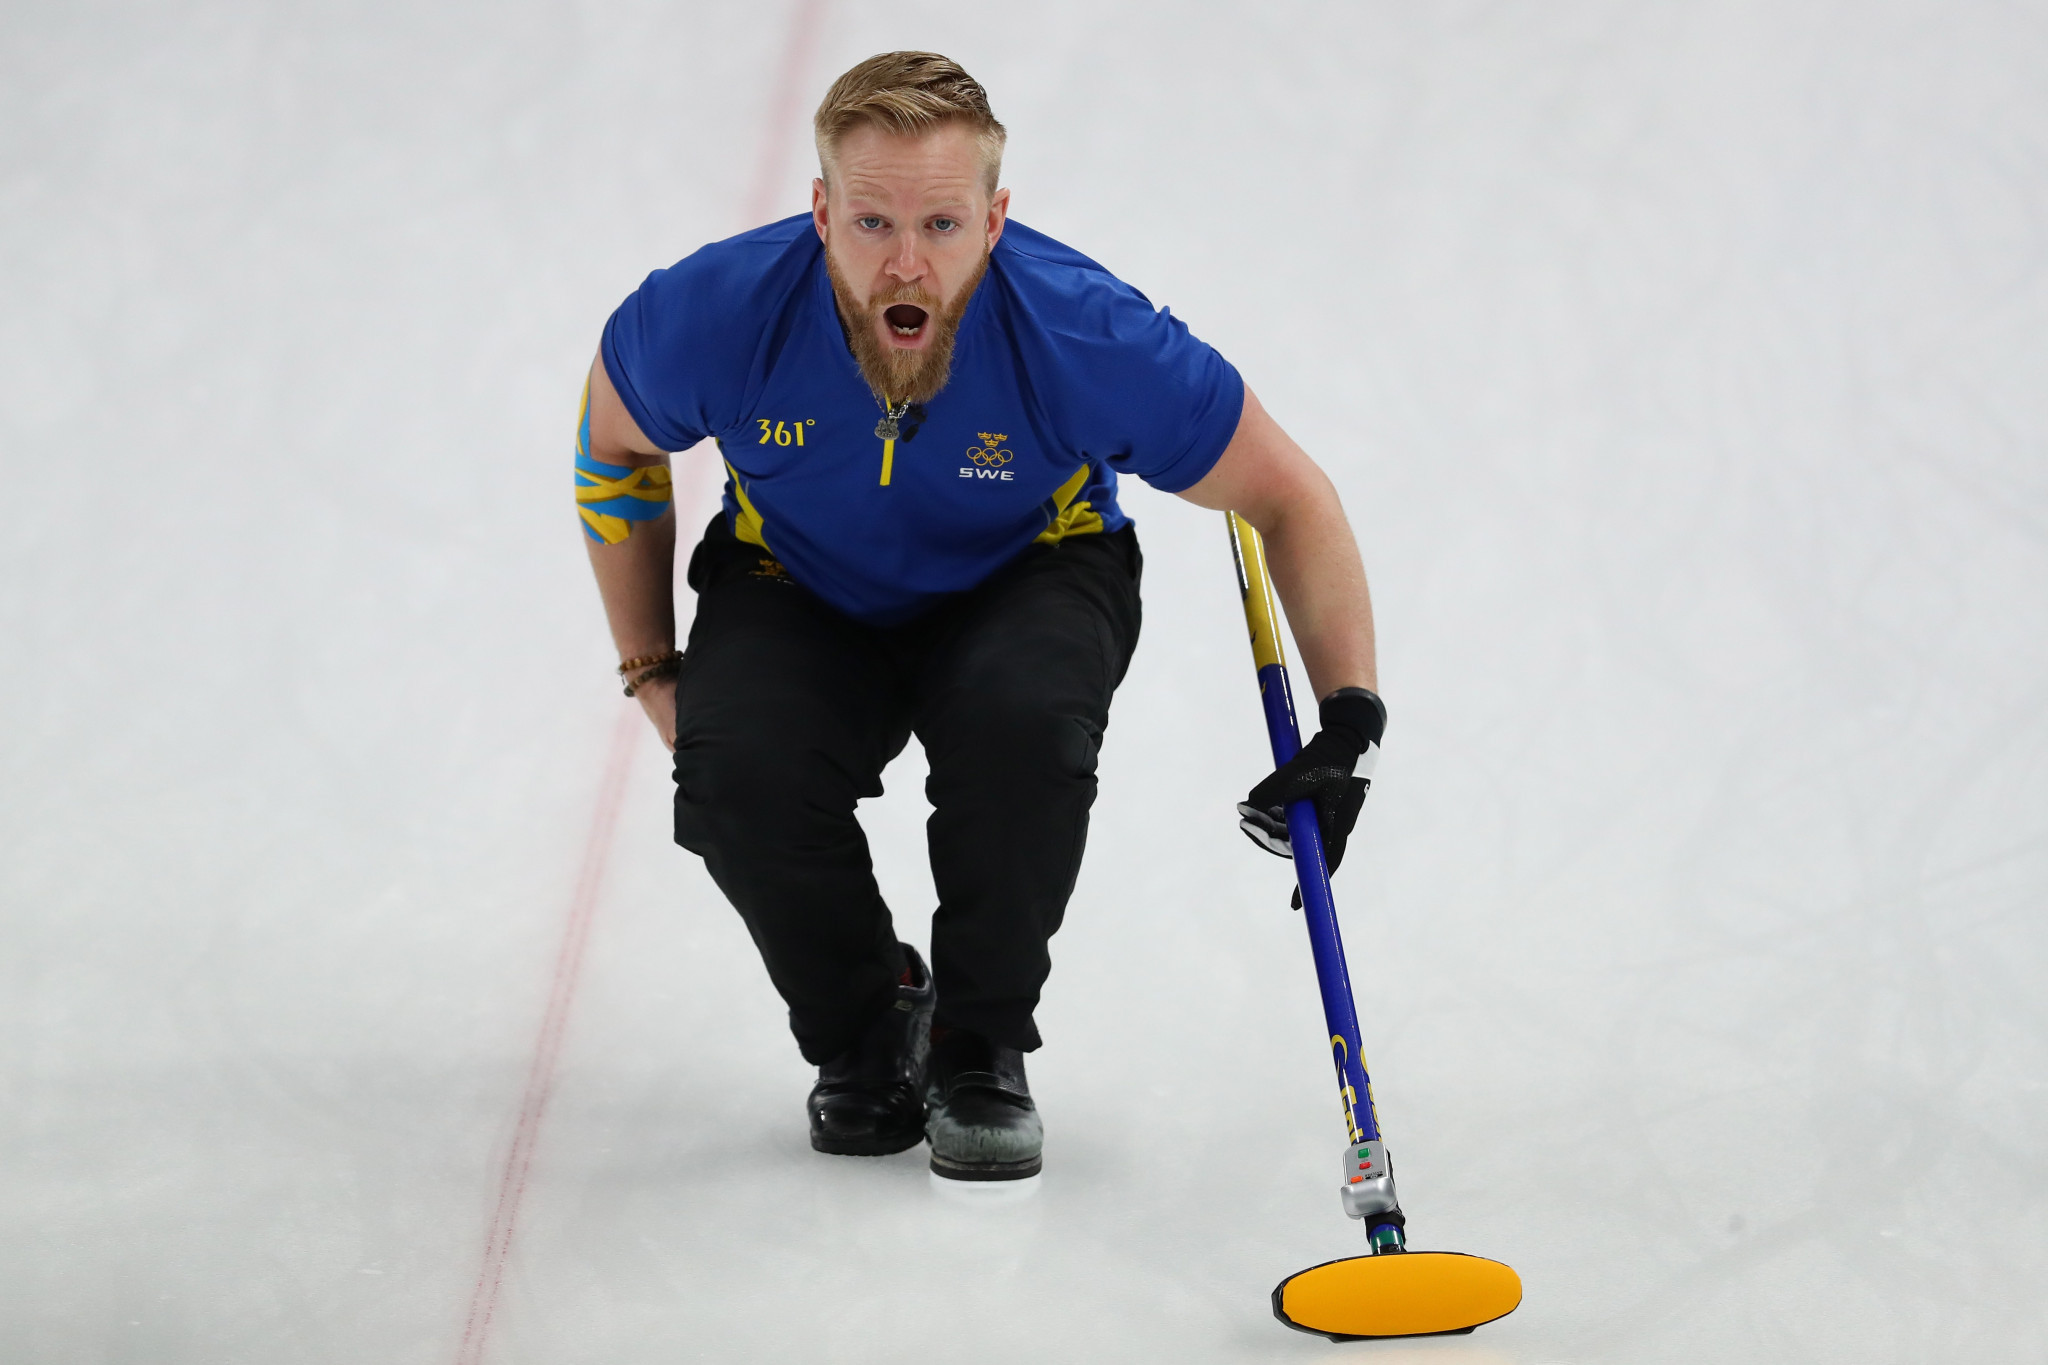 Niklas Edin skippered Sweden to a third successive World Men's Curling Championship title ©Getty Images